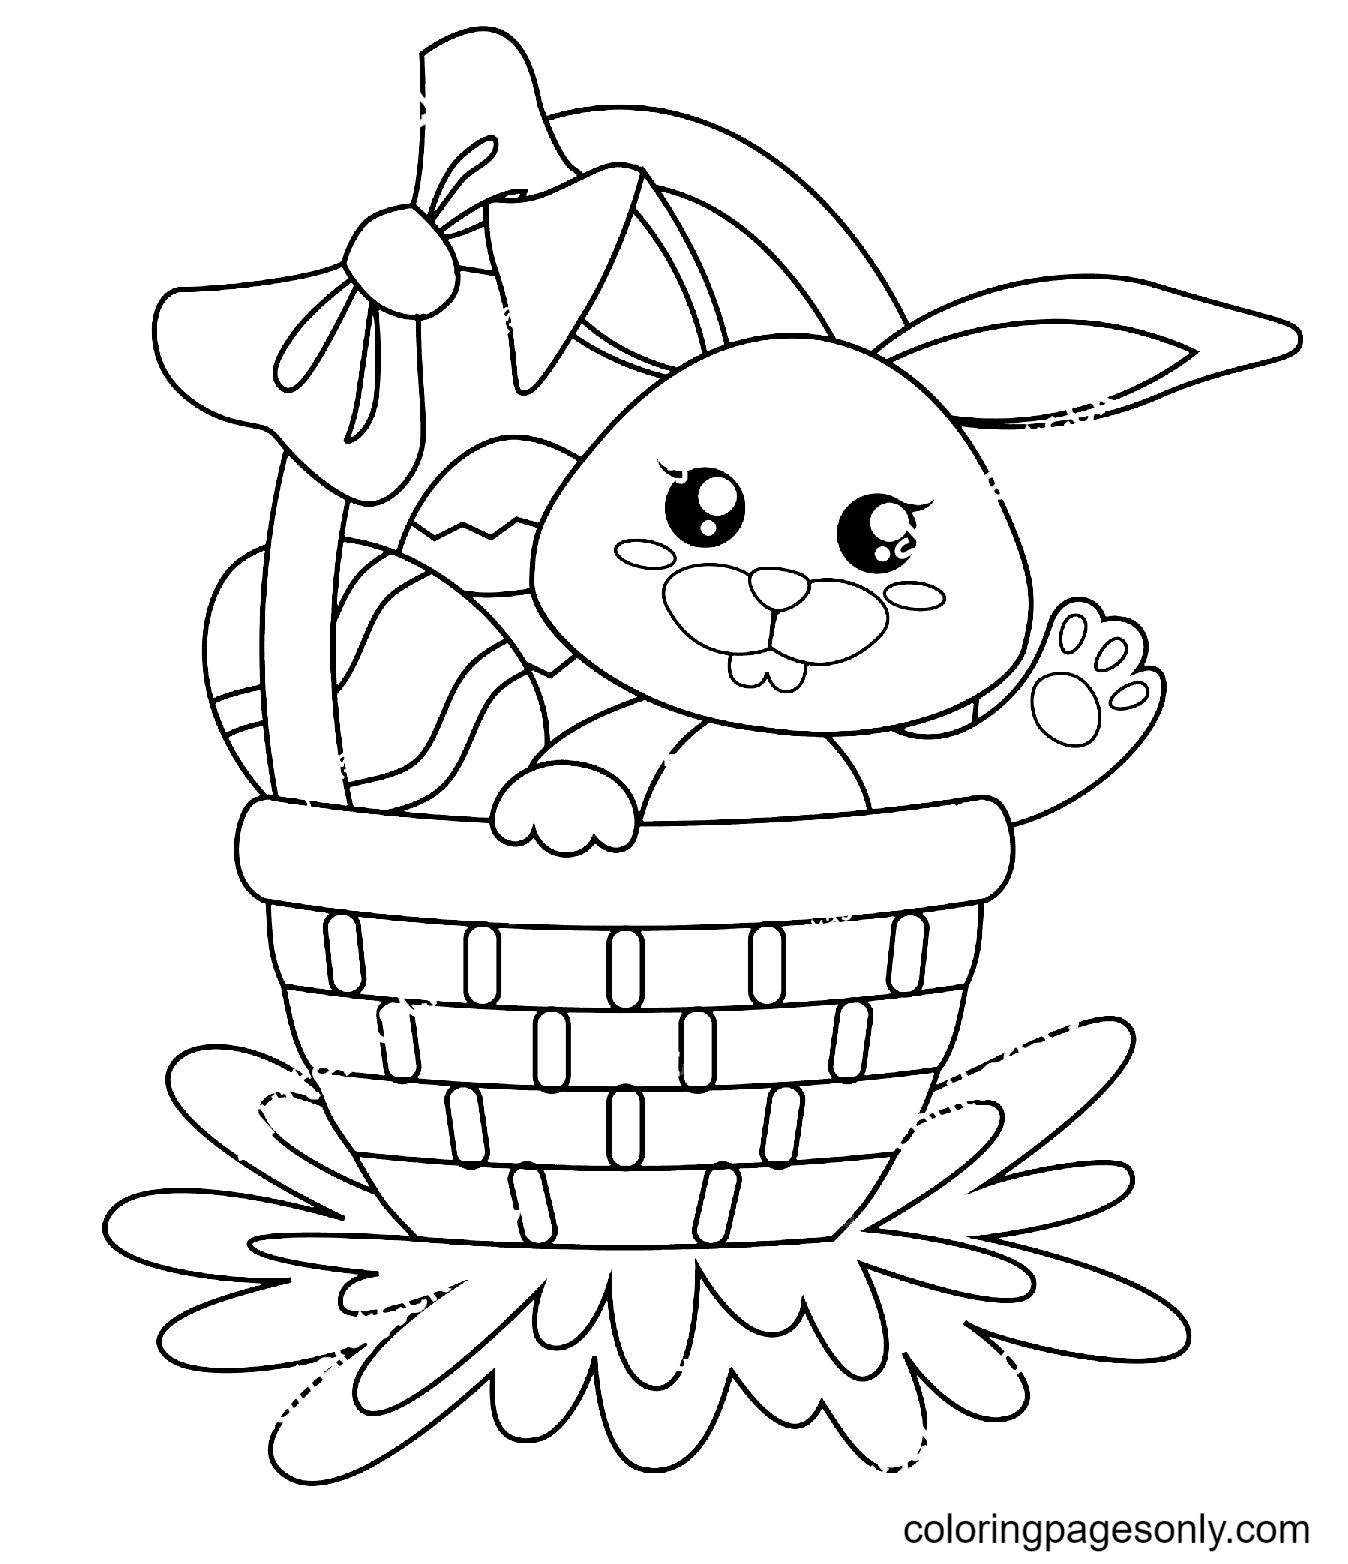 Cute Easter Bunny Sitting in Basket with Eggs Coloring Page